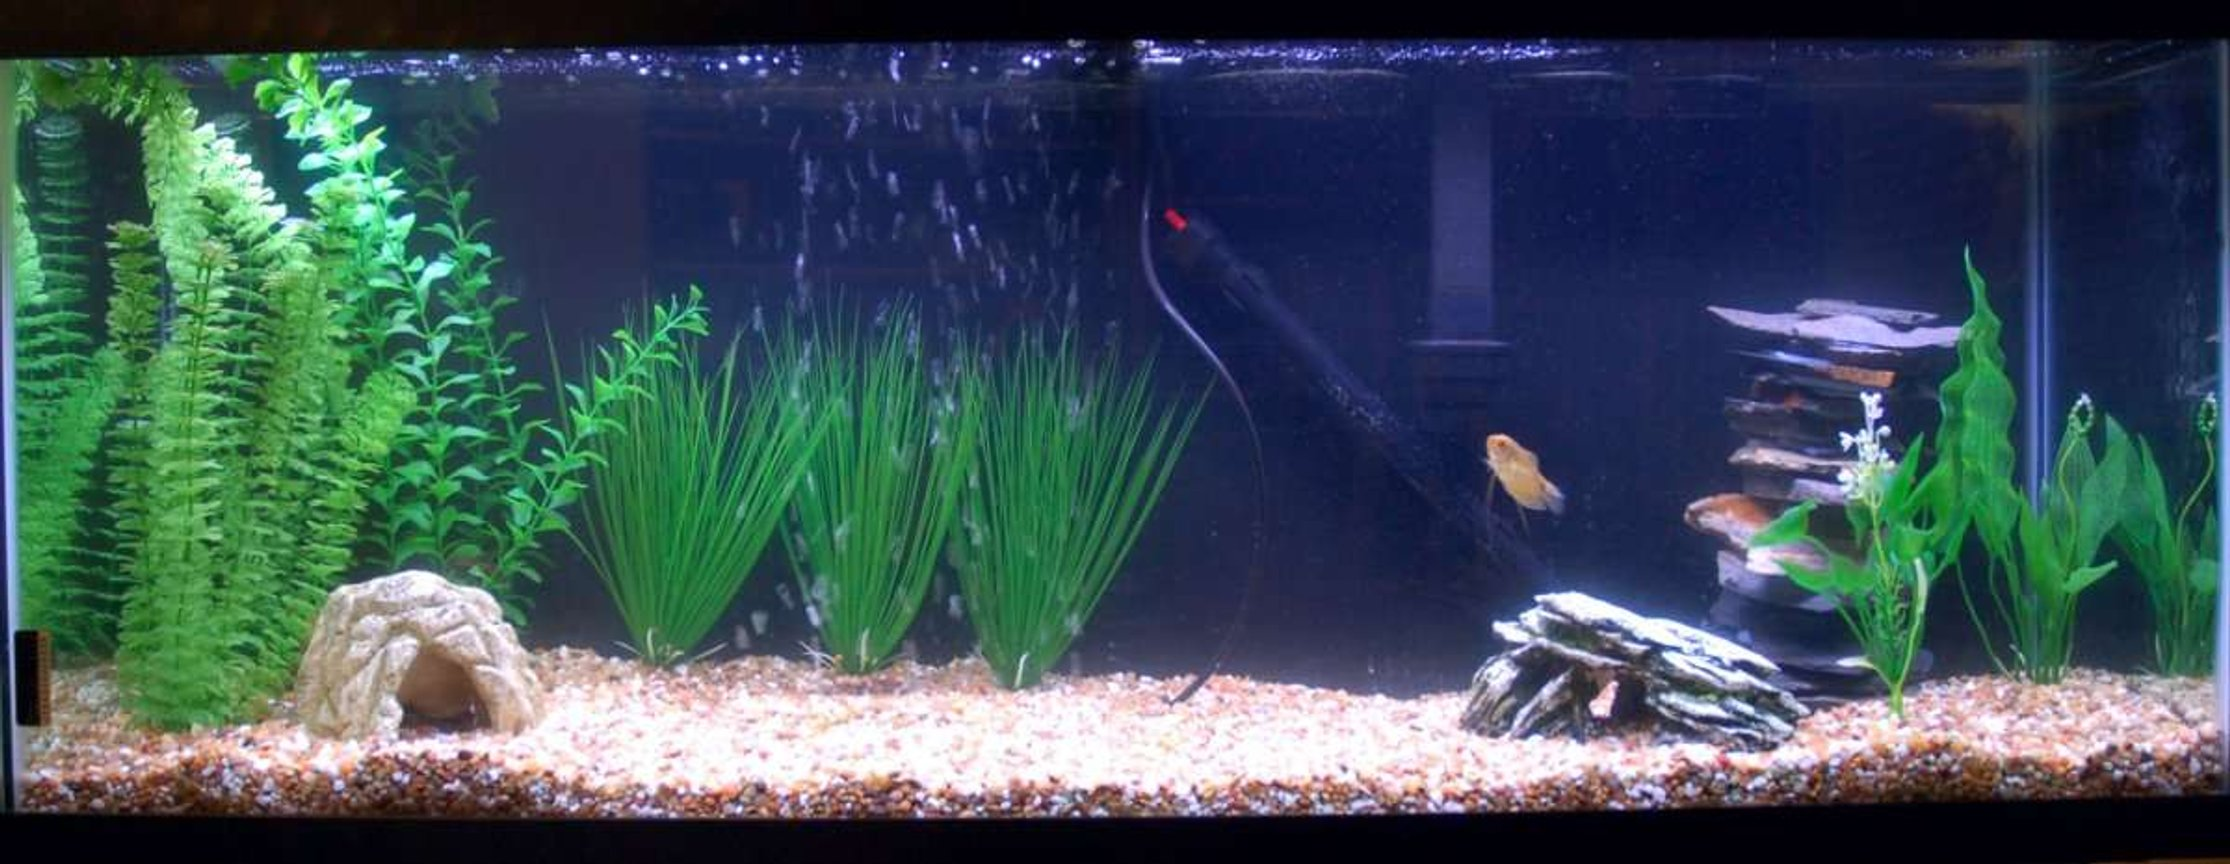 55 gallons freshwater fish tank (mostly fish and non-living decorations) - Here is my tank